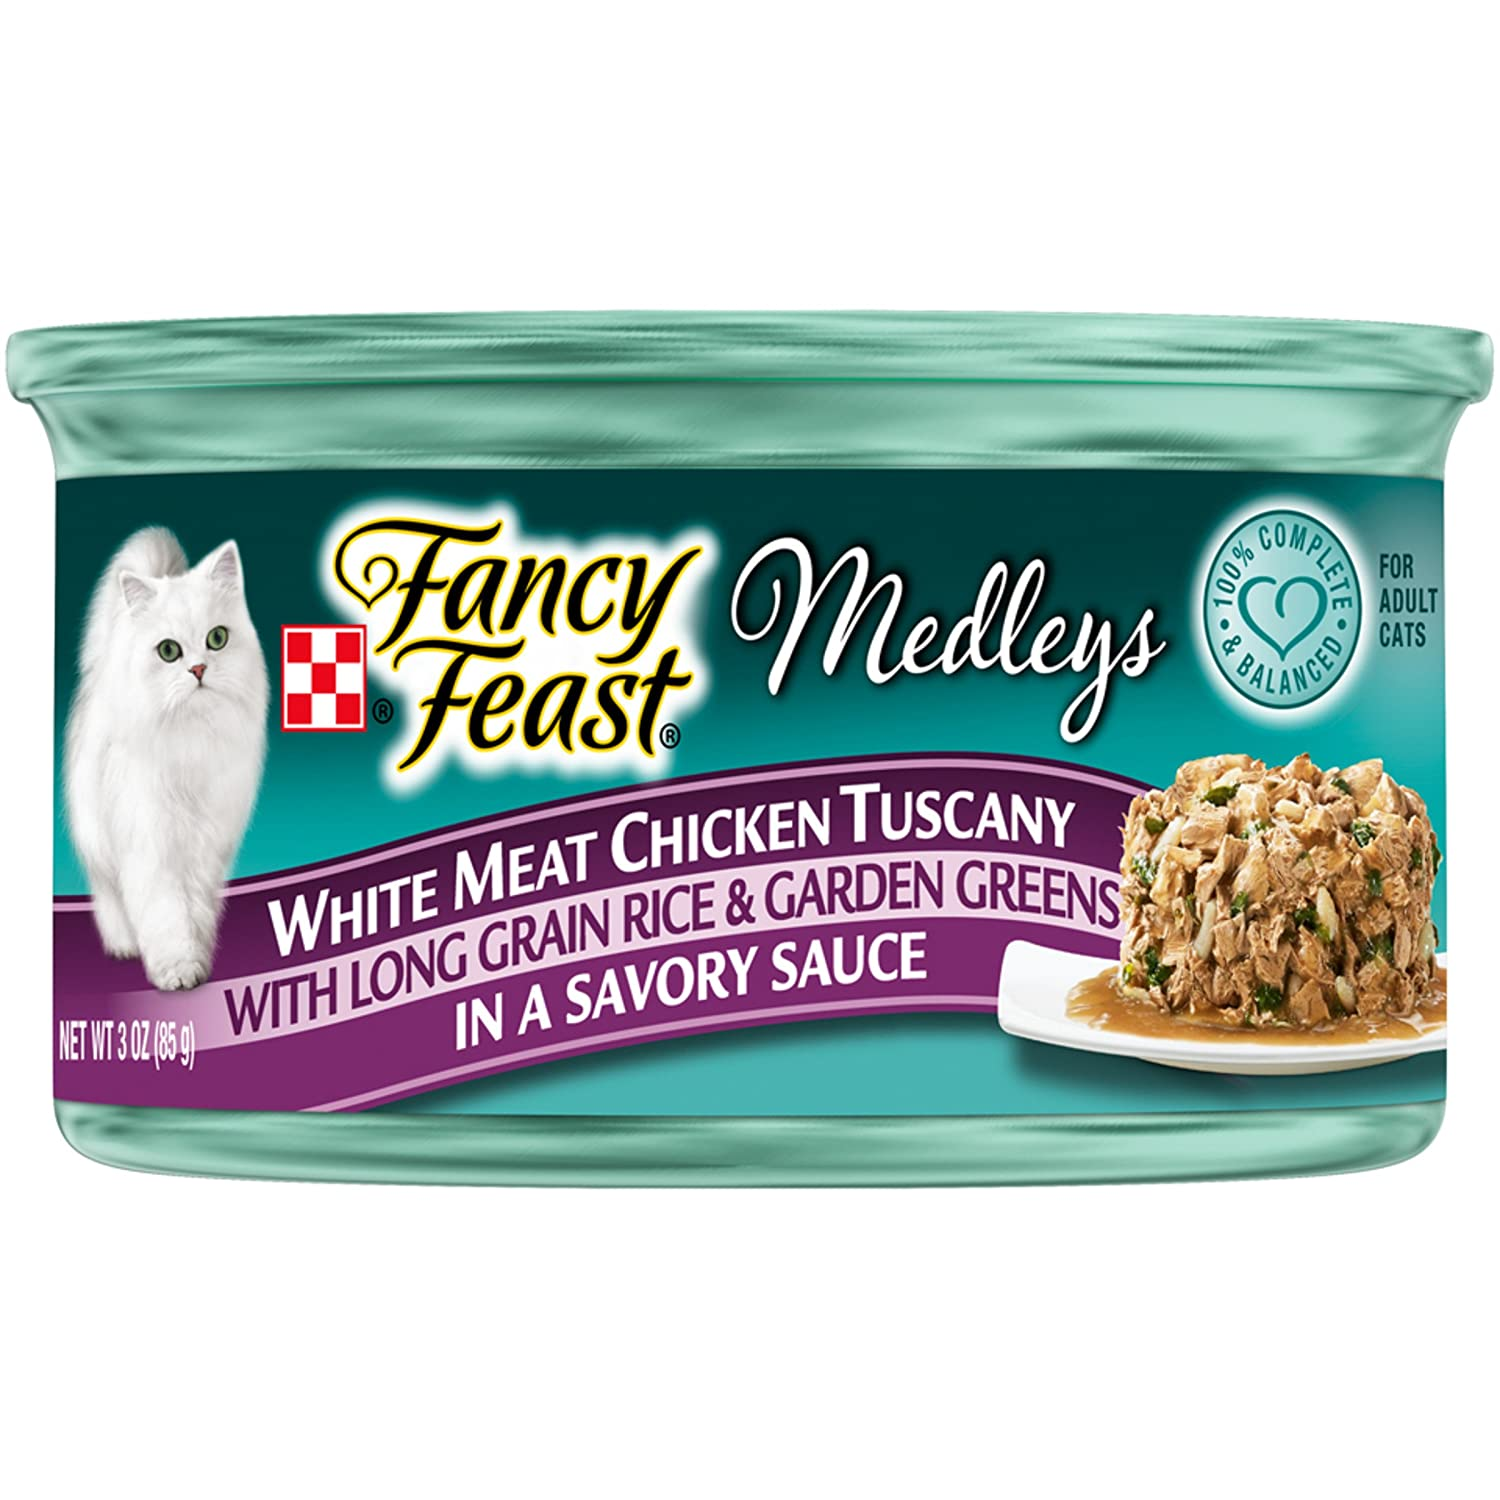 Purina Fancy Feast Medleys Tuscany Collection Gourmet Wet Cat Food - (24) 3 oz. Cans